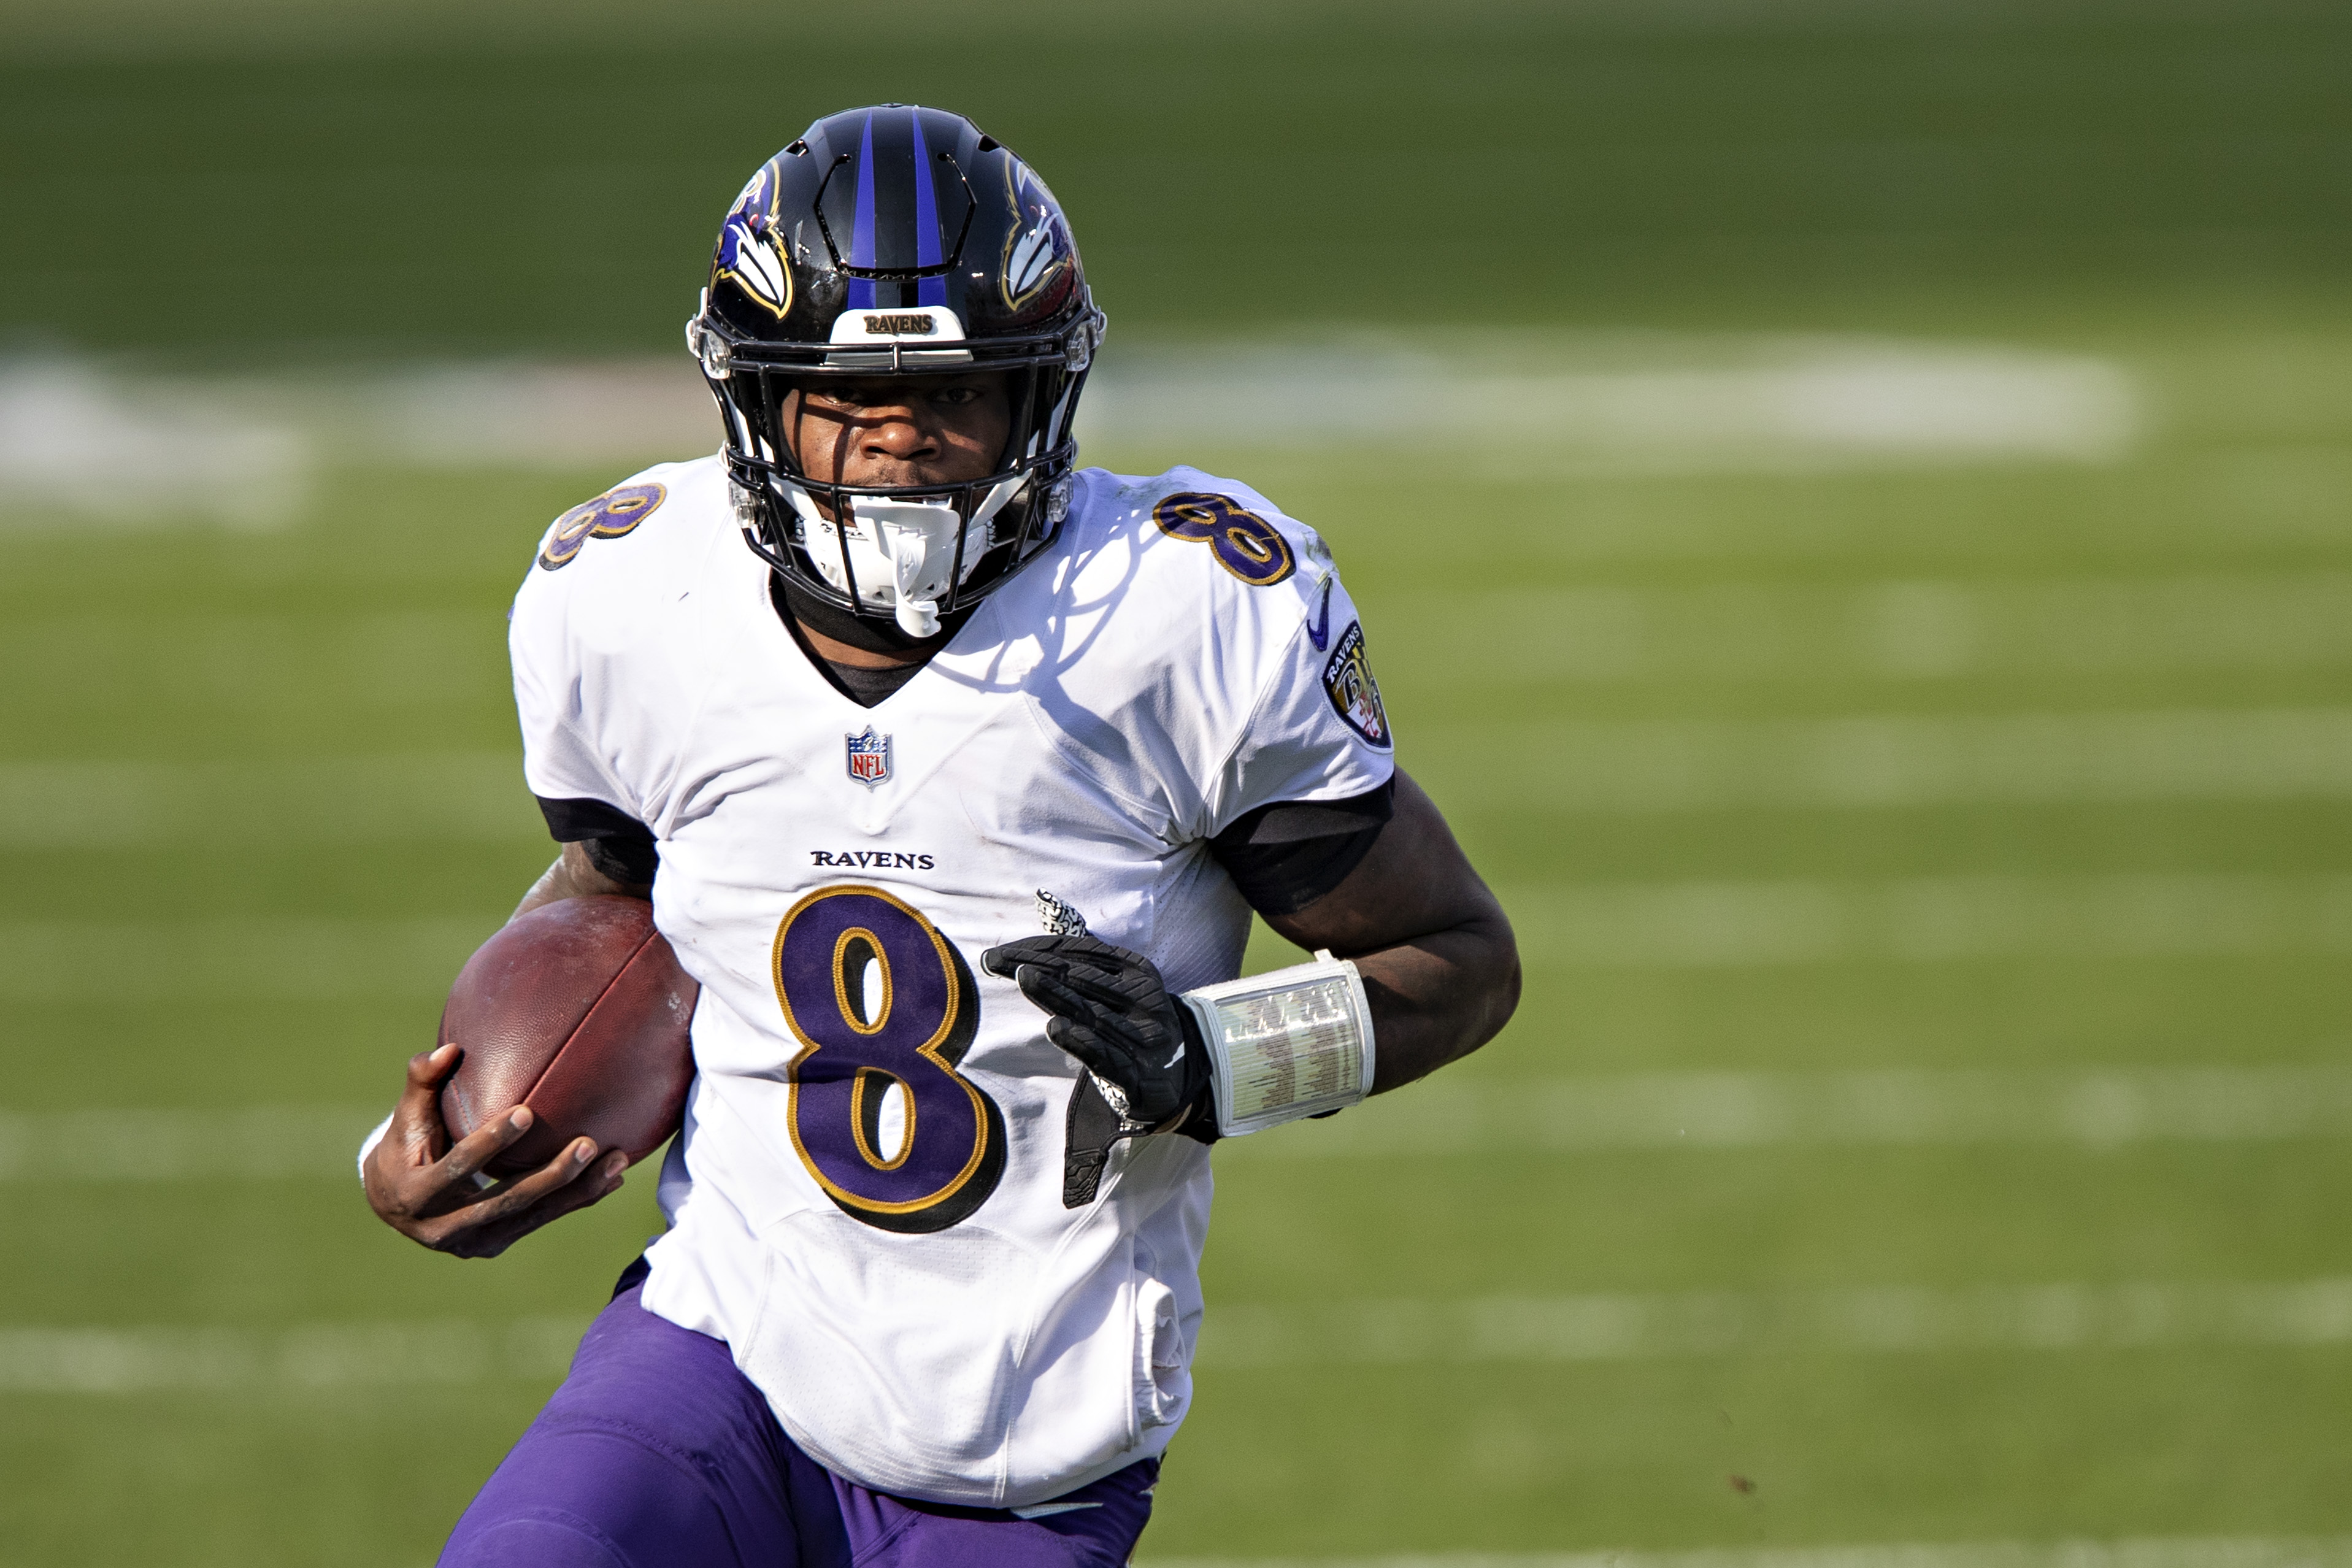 Quarterback Lamar Jackson #8 of the Baltimore Ravens runs the ball during their AFC Wild Card Playoff game against the Tennessee Titans at Nissan Stadium on January 10, 2021 in Nashville, Tennessee.